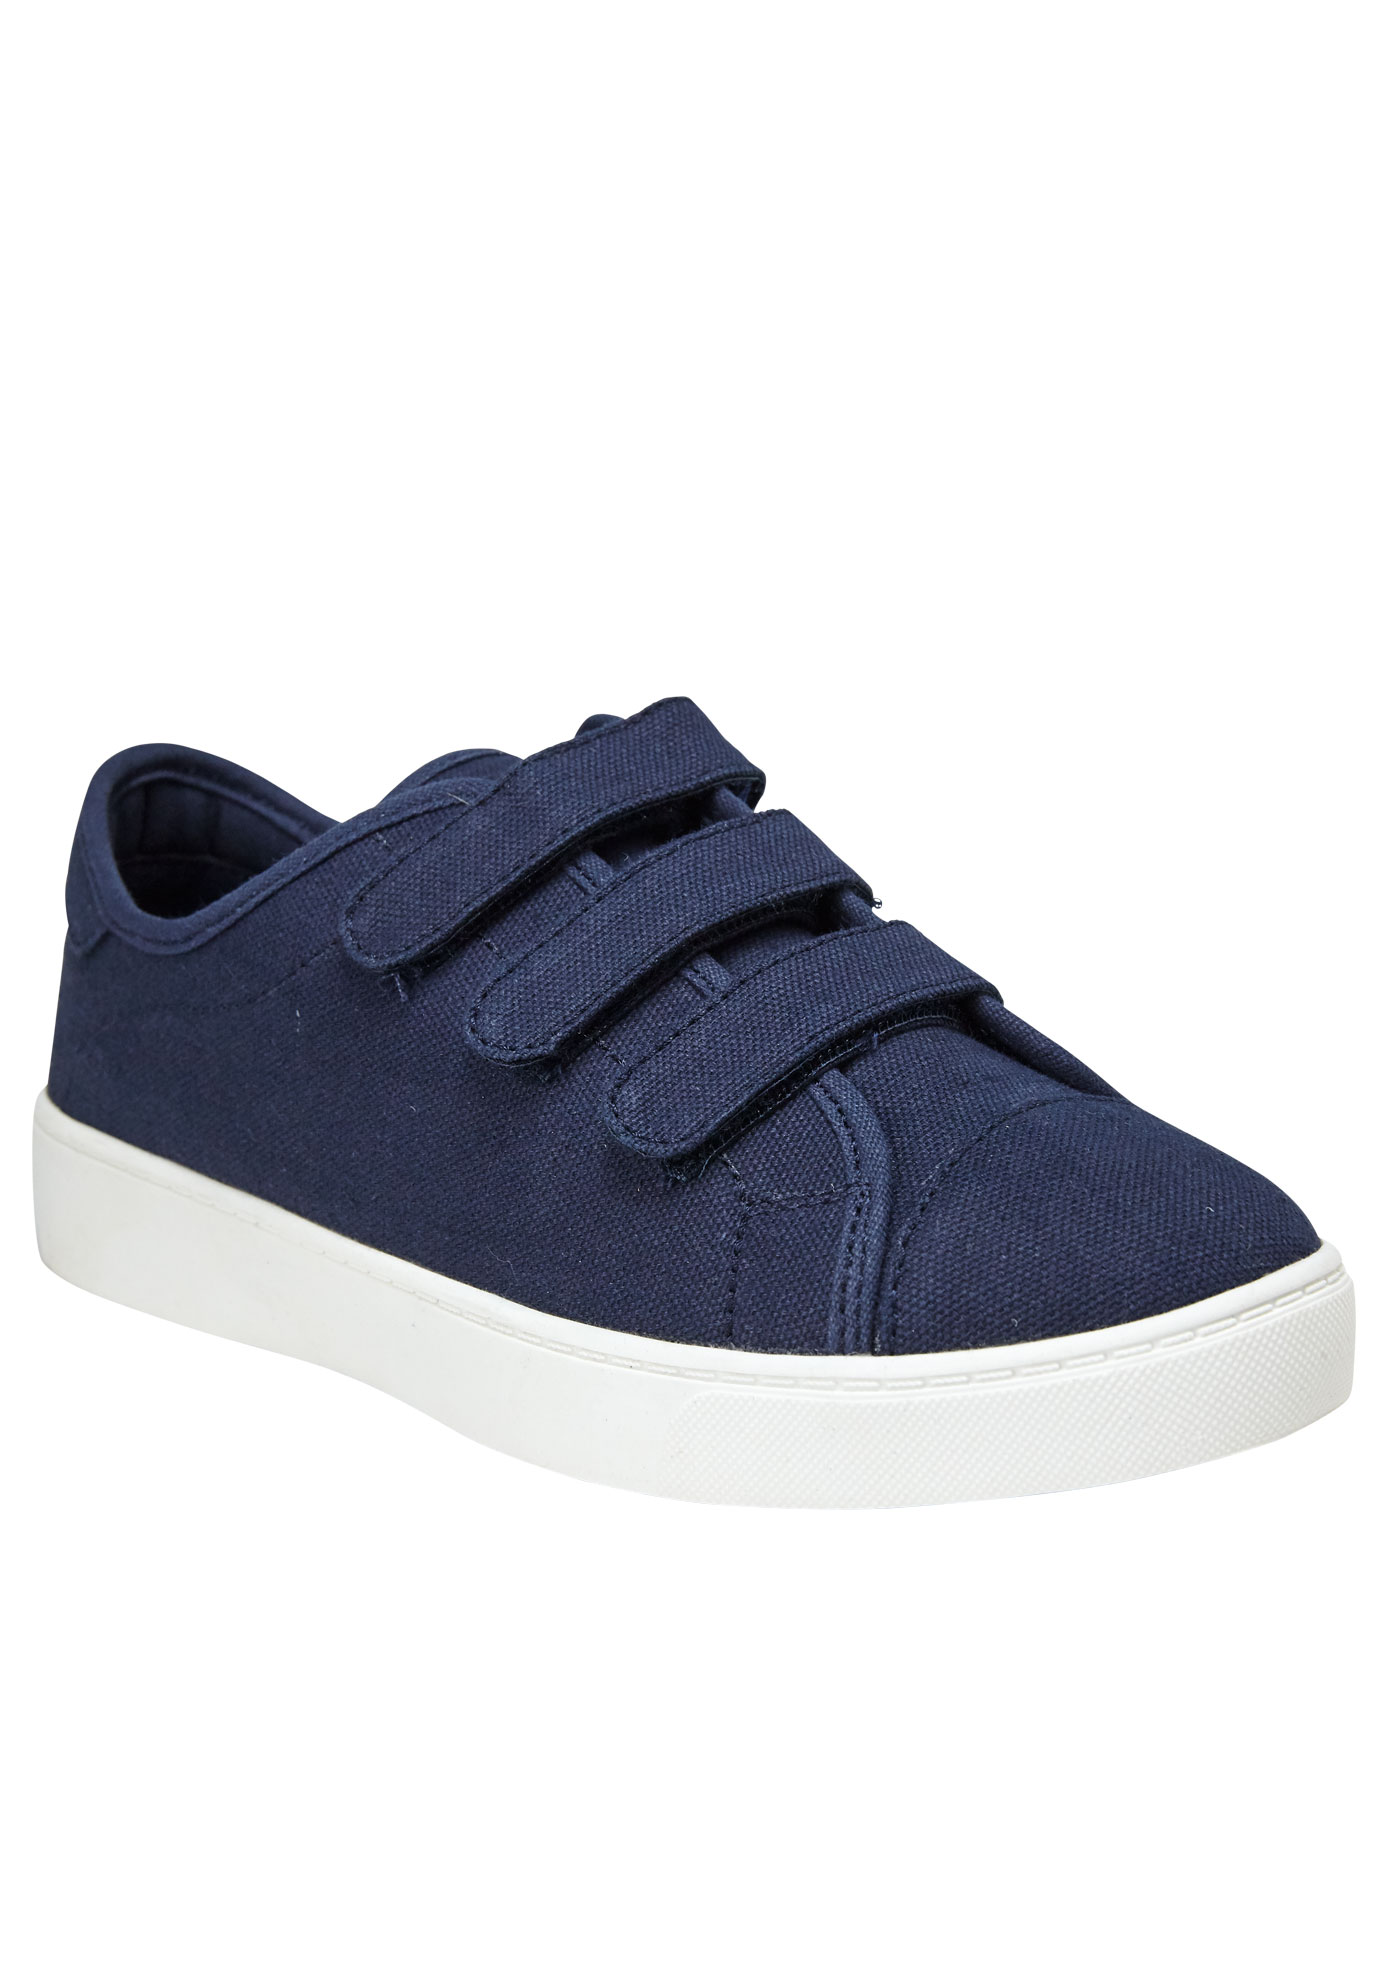 Oakley Sneakers by Comfortview®, NAVY, hi-res